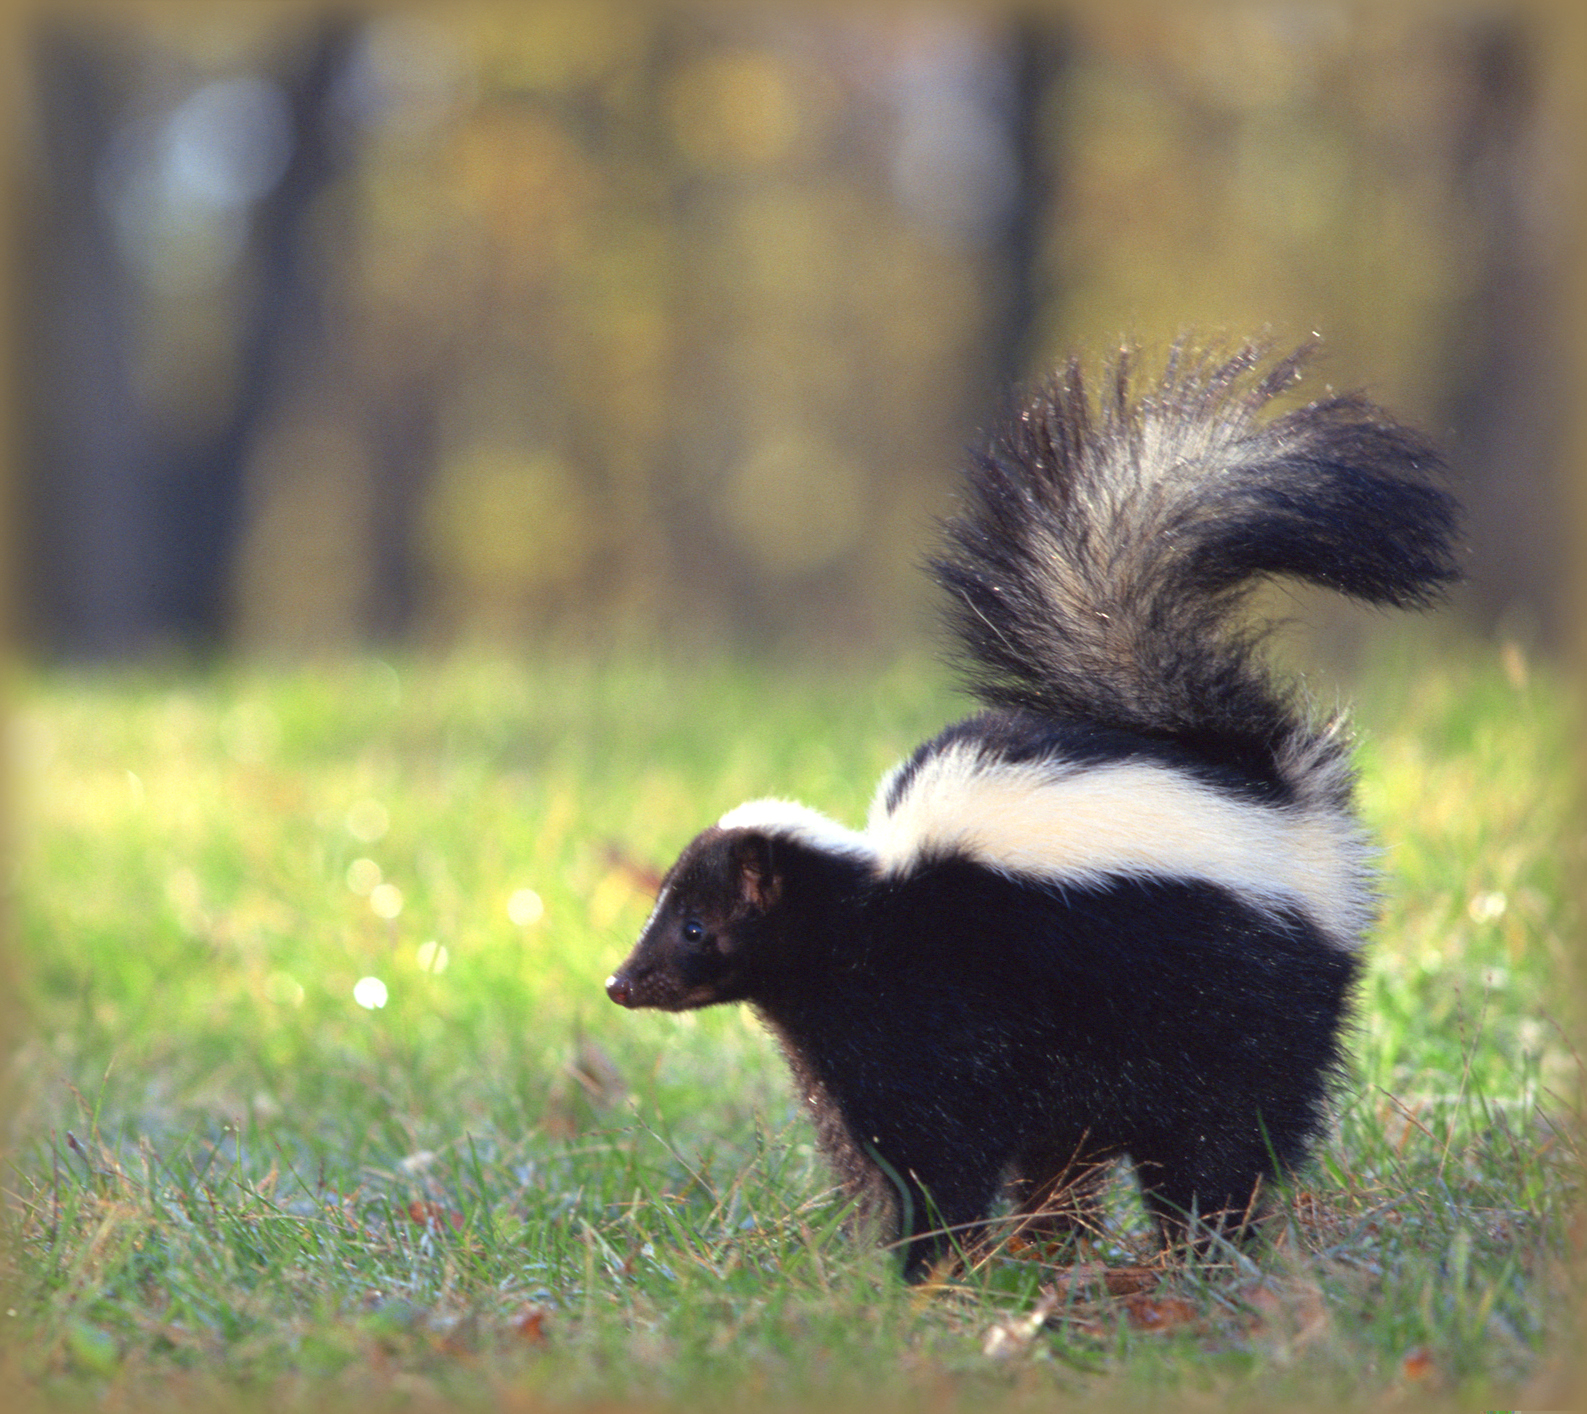 Skunk spraying human clipart banner download Skunks: How to Identify and Get Rid of Skunks in the Garden ... banner download